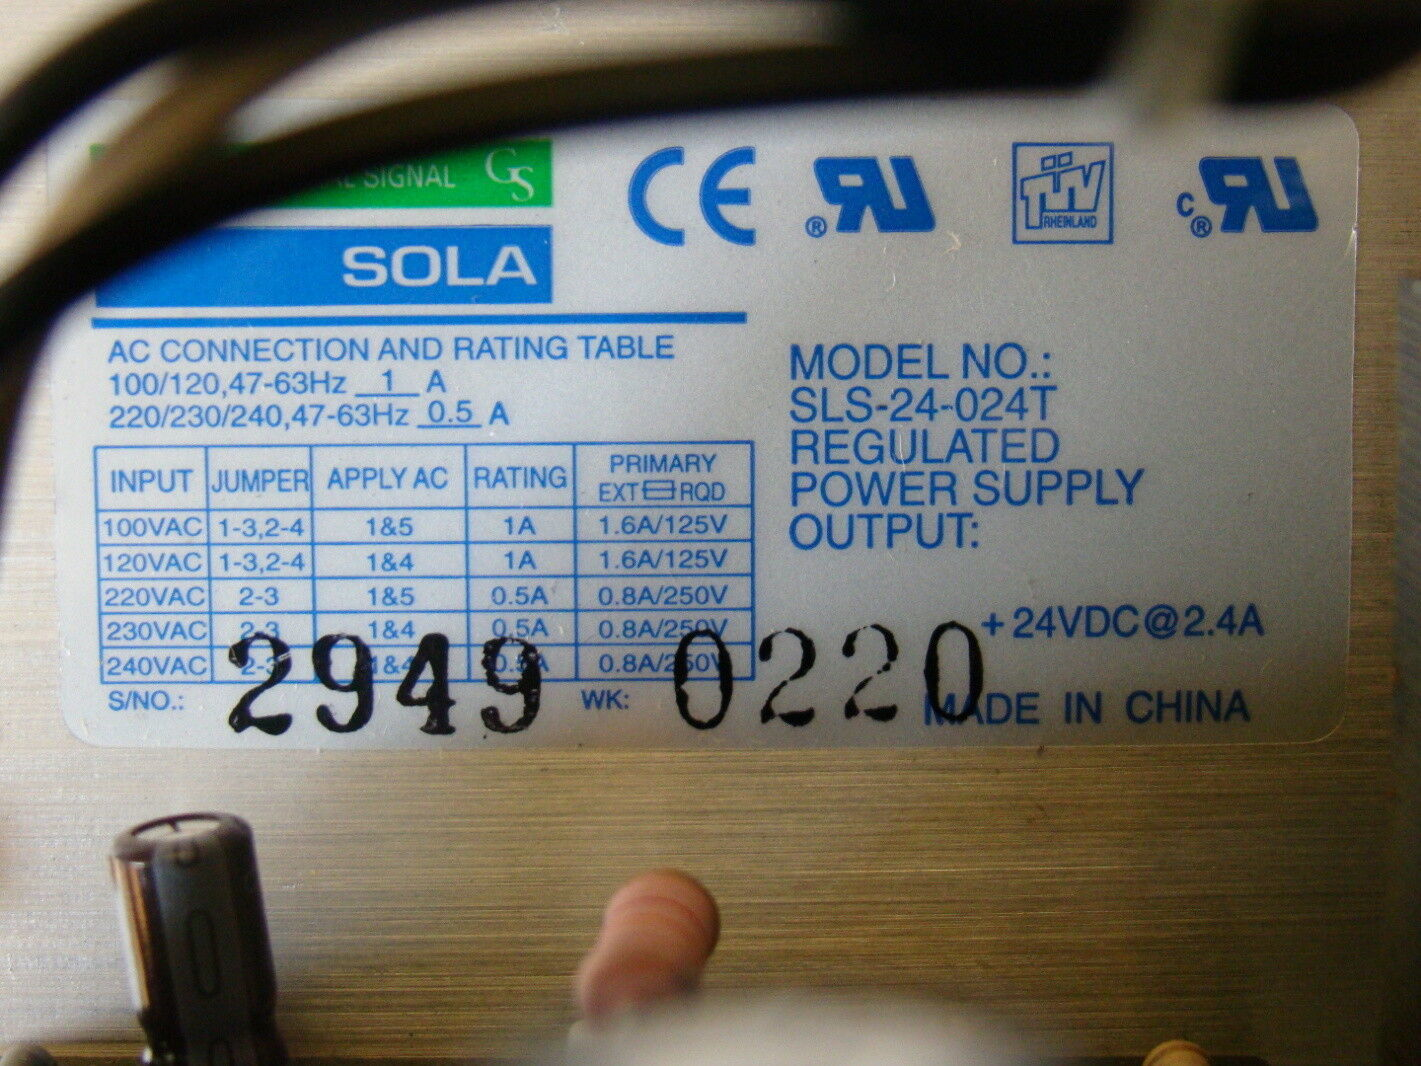 SOLA AC Connection And Rating Table SLS-24-024T | eBay